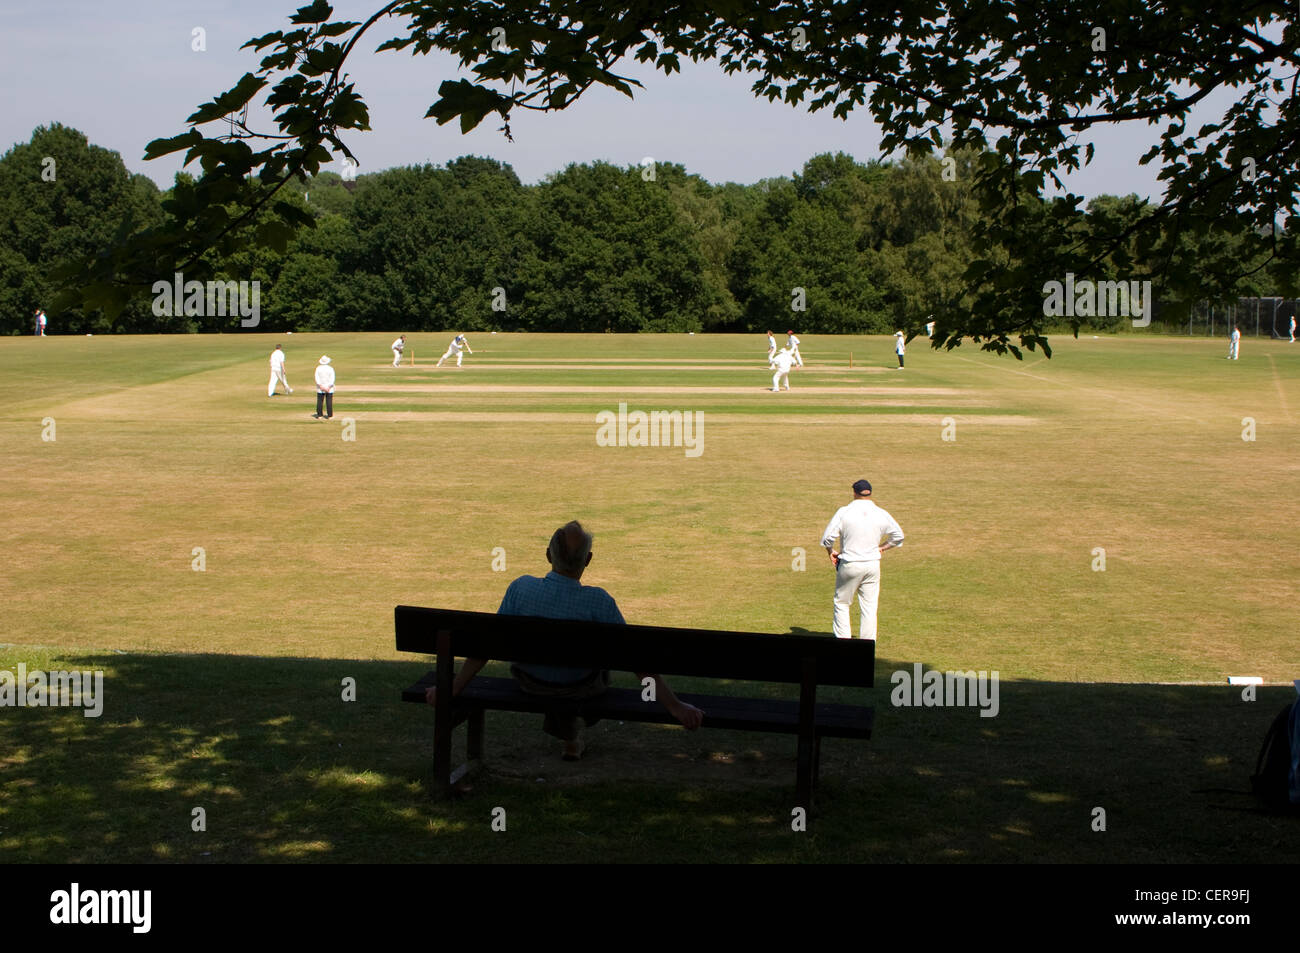 Cricket match being played on a village green. Stock Photo